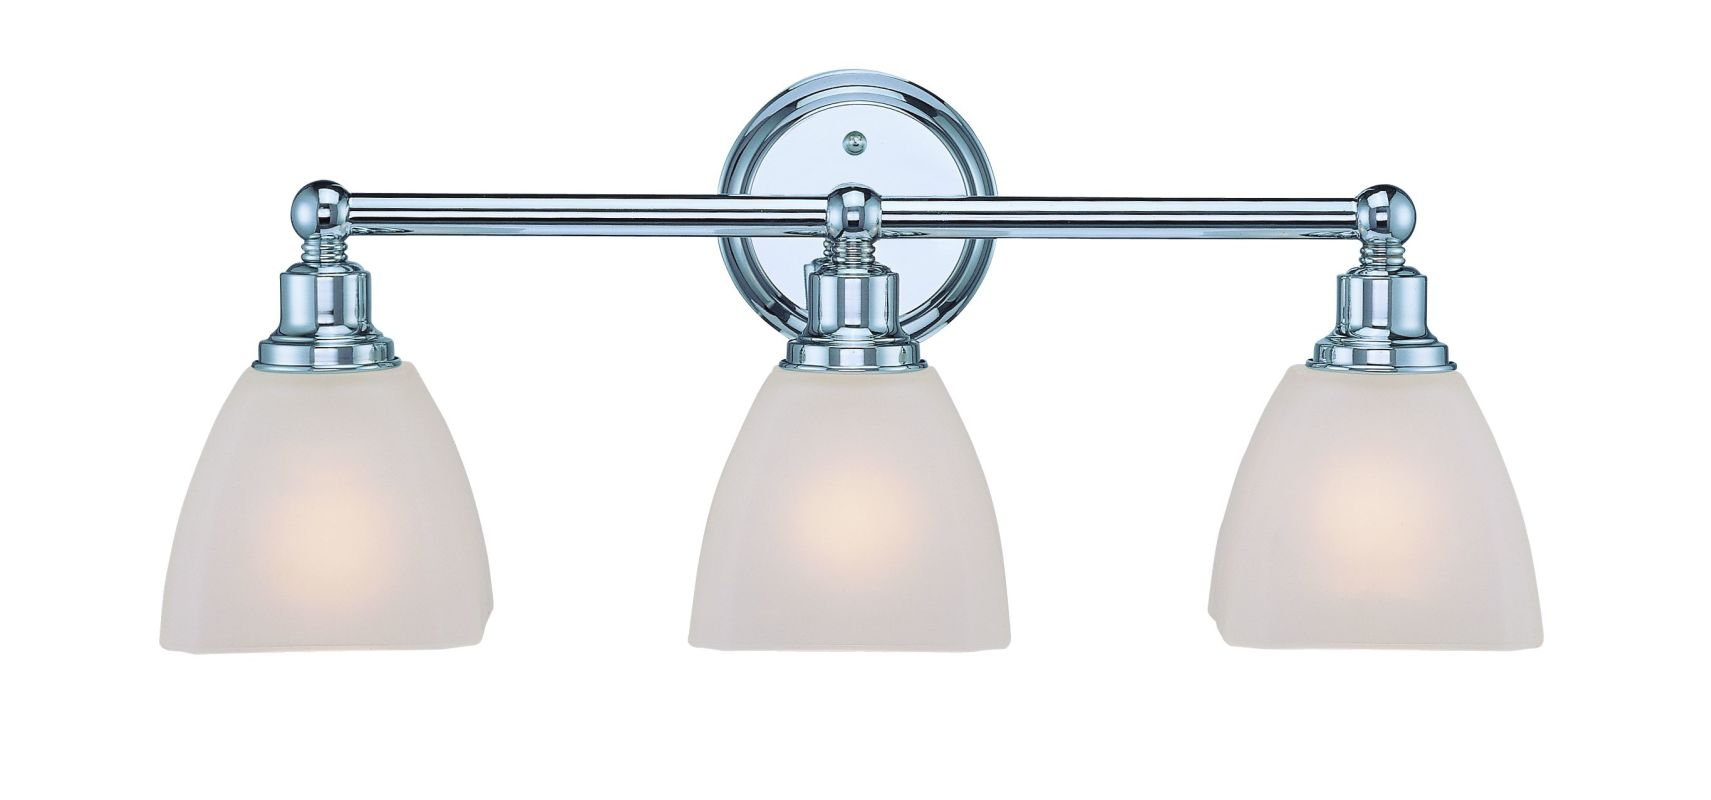 Jeremiah Lighting 26603 Bradley 3 Light Bathroom Vanity Light - 23.5